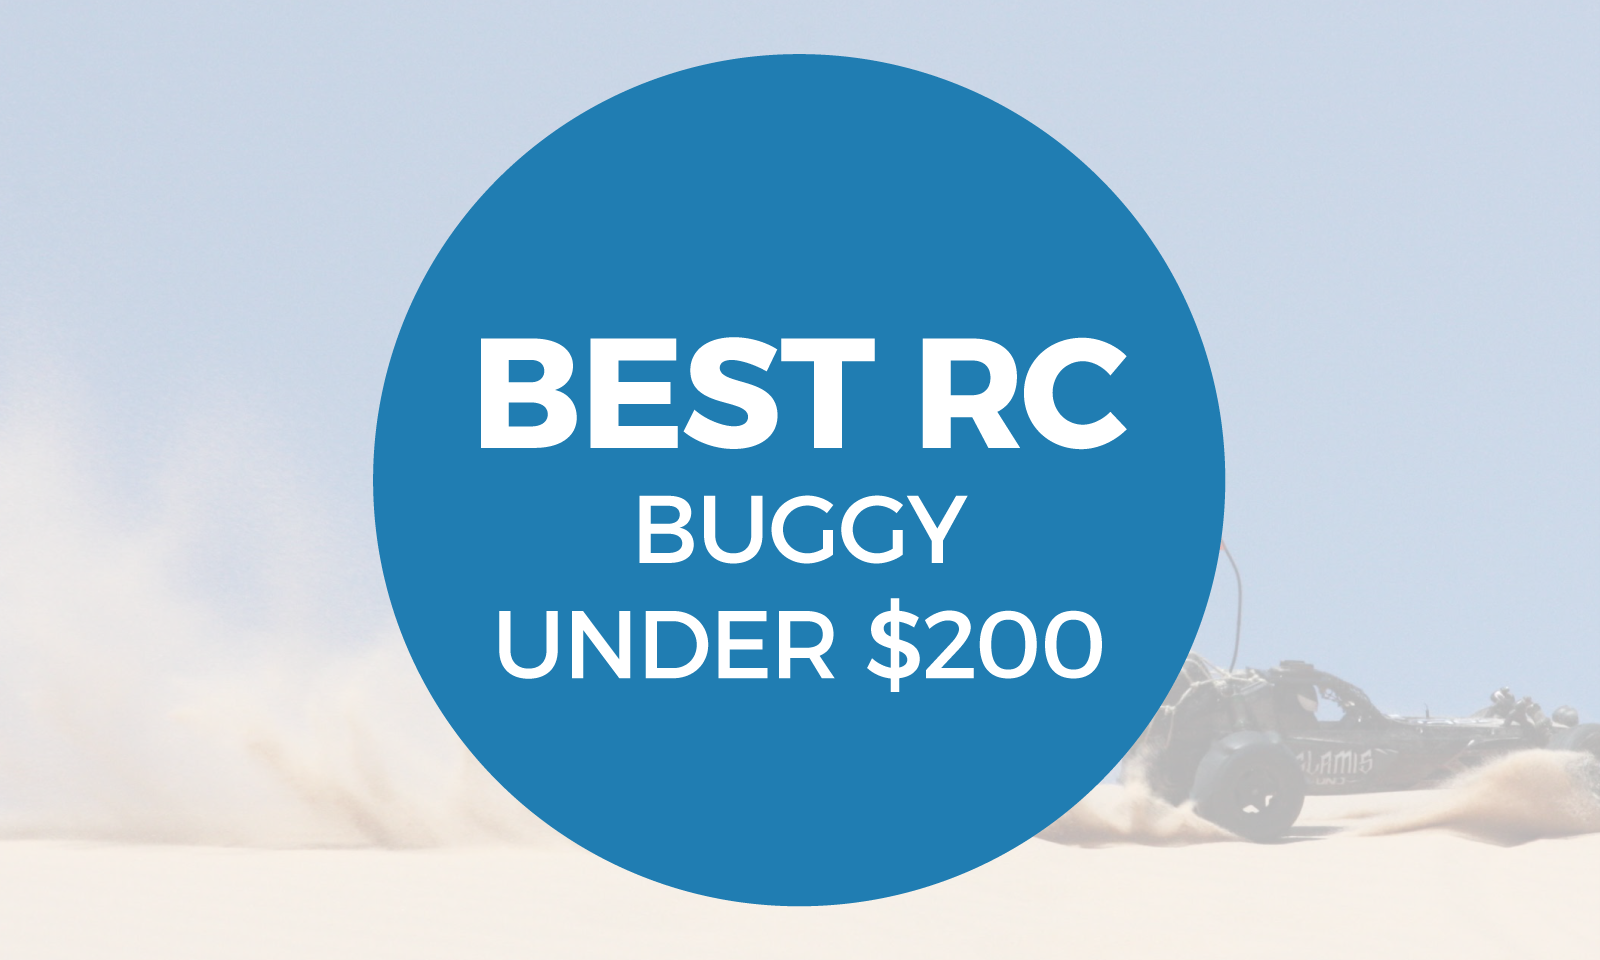 Best RC Buggy Under $200 Article Header